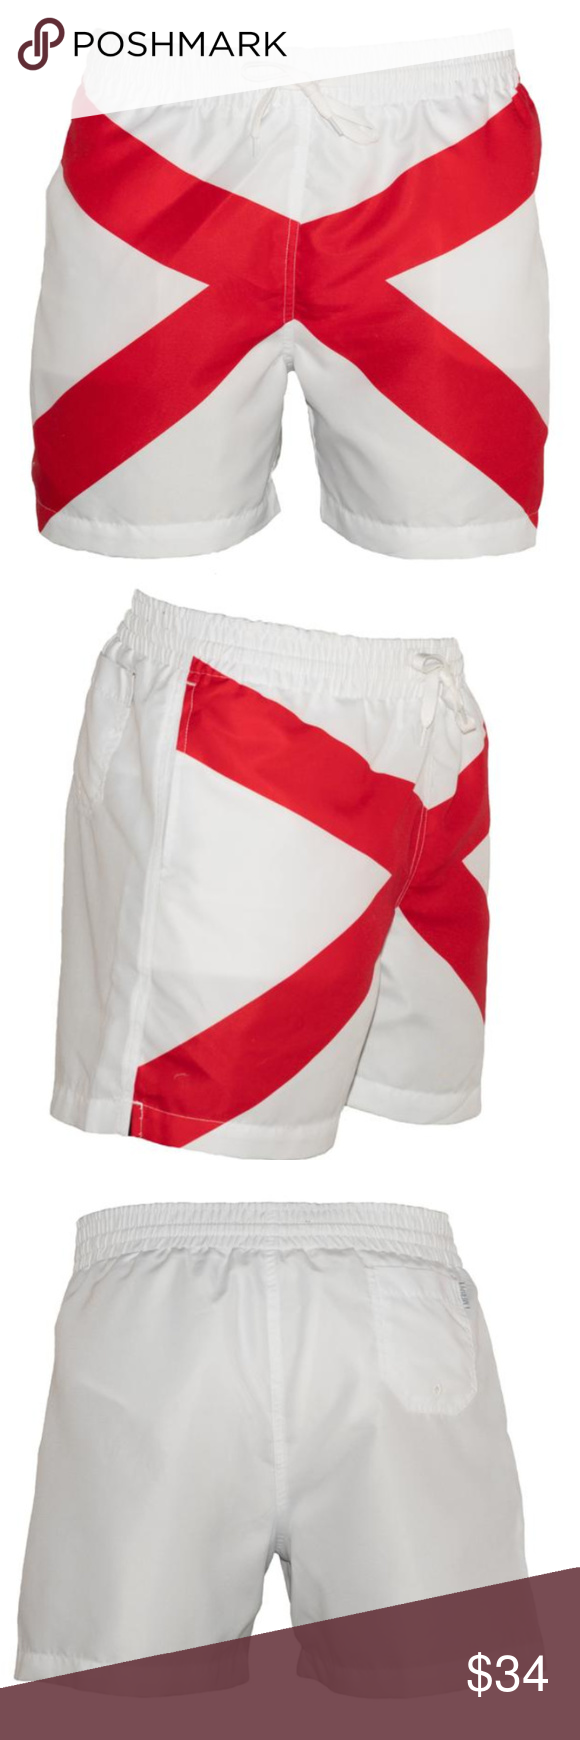 "MPEX 5.5"" Inseam Alabama Men's Swimming Trunks MPEX 5.5"